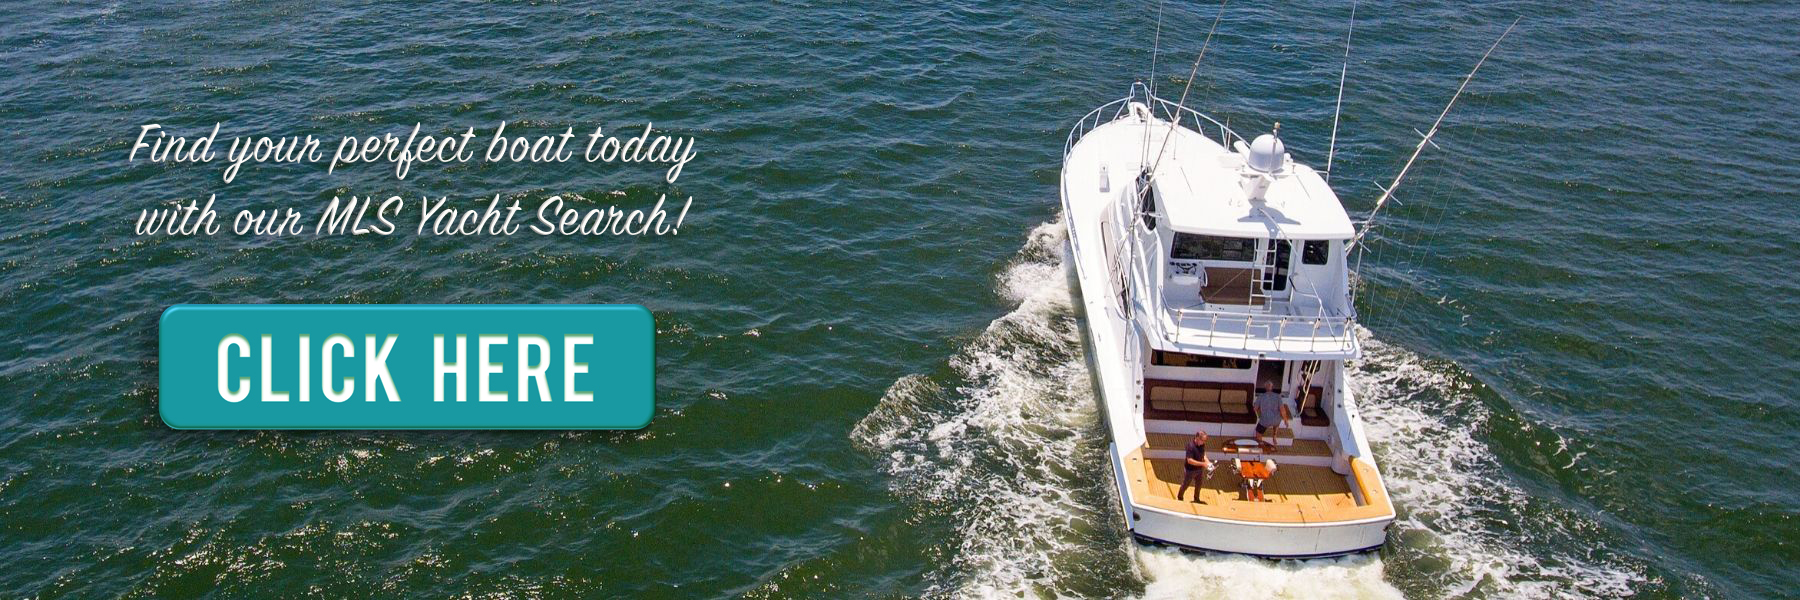 Find your perfect boat today with our MLS Yacht Search